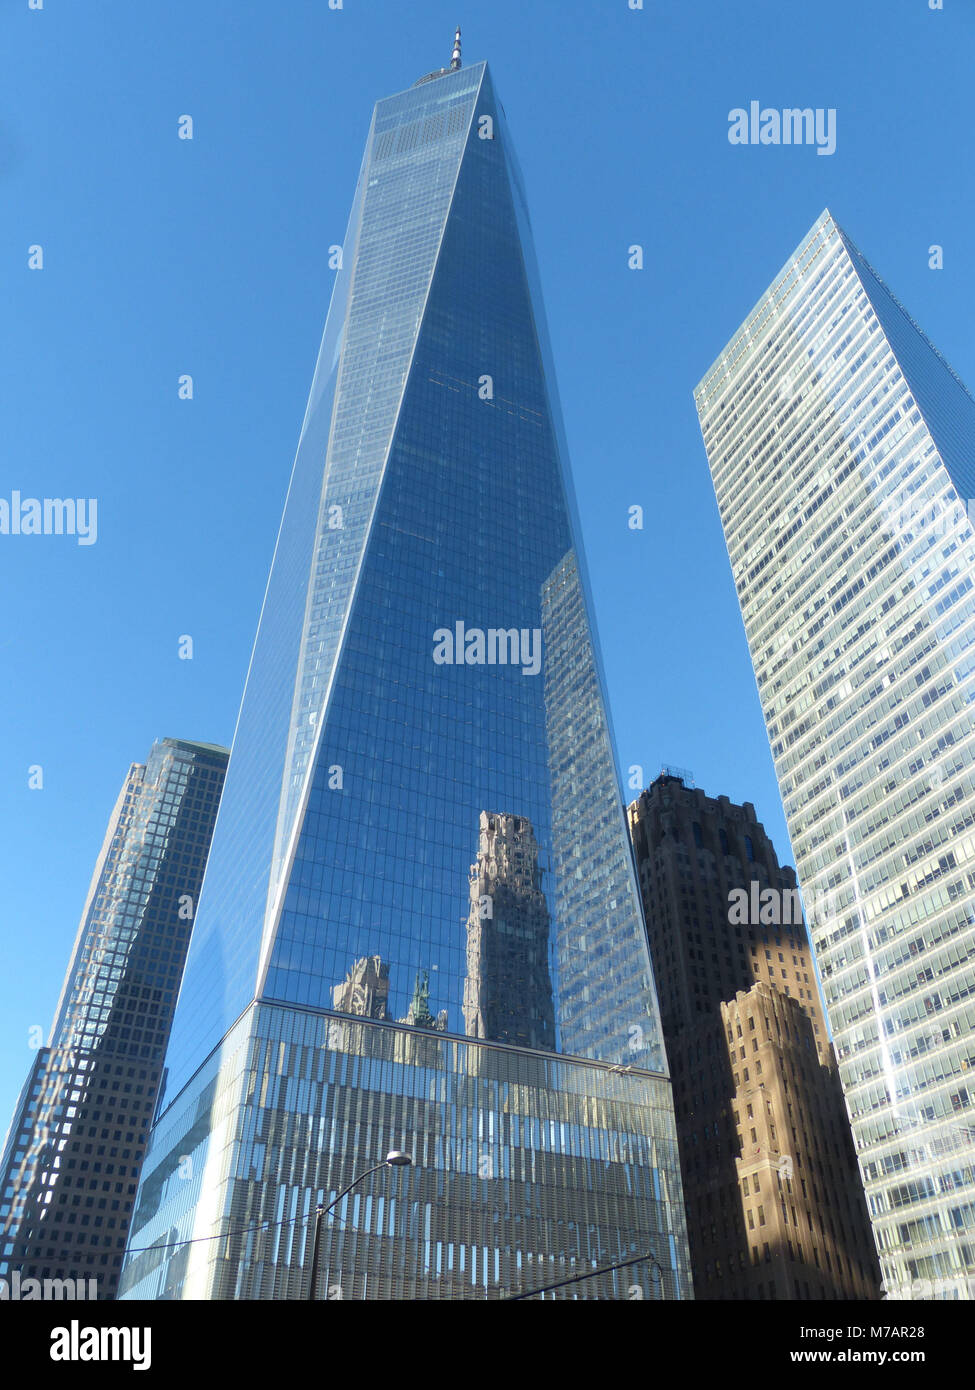 1 WTC or One World Trade Center with the World Trade Center designed by Architect David Childs - Stock Image